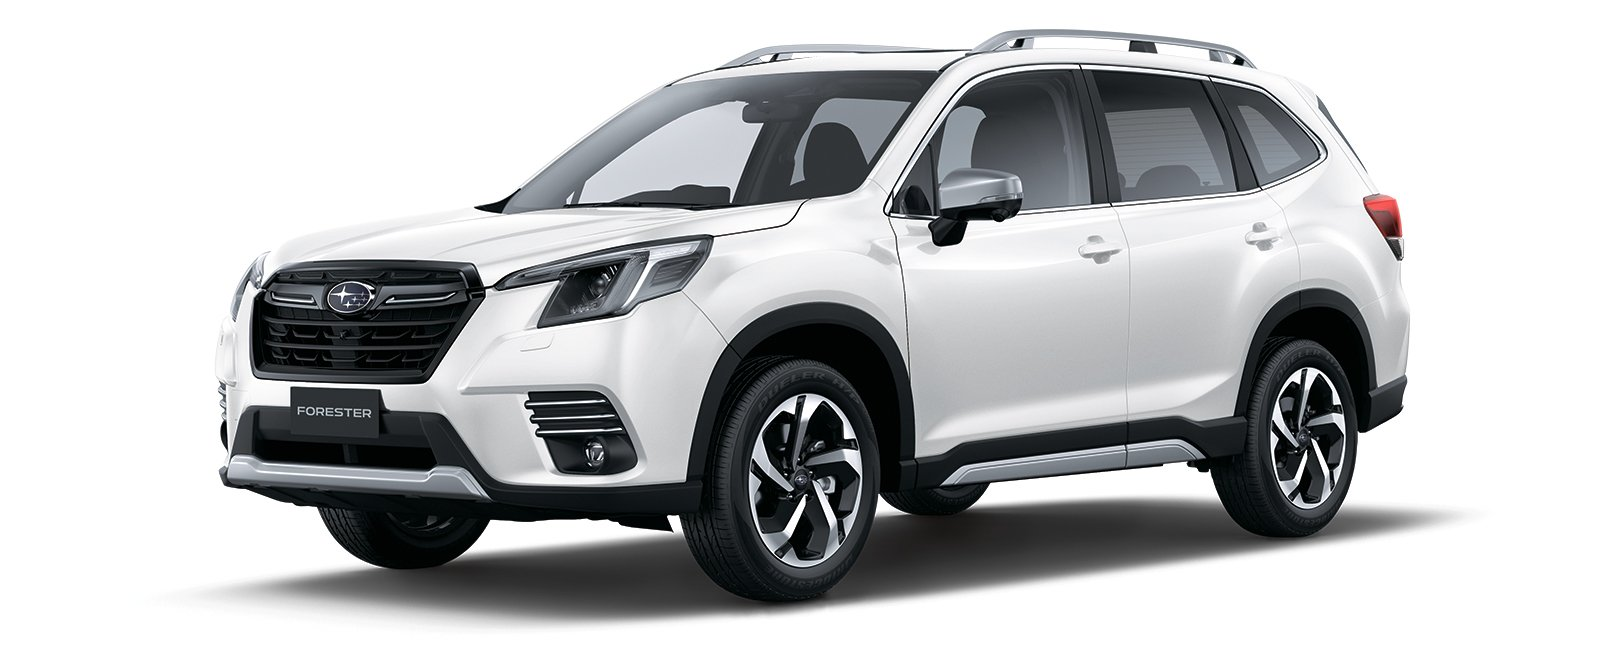 2022 Forester 2.5 Premium_Crystal White Pearl